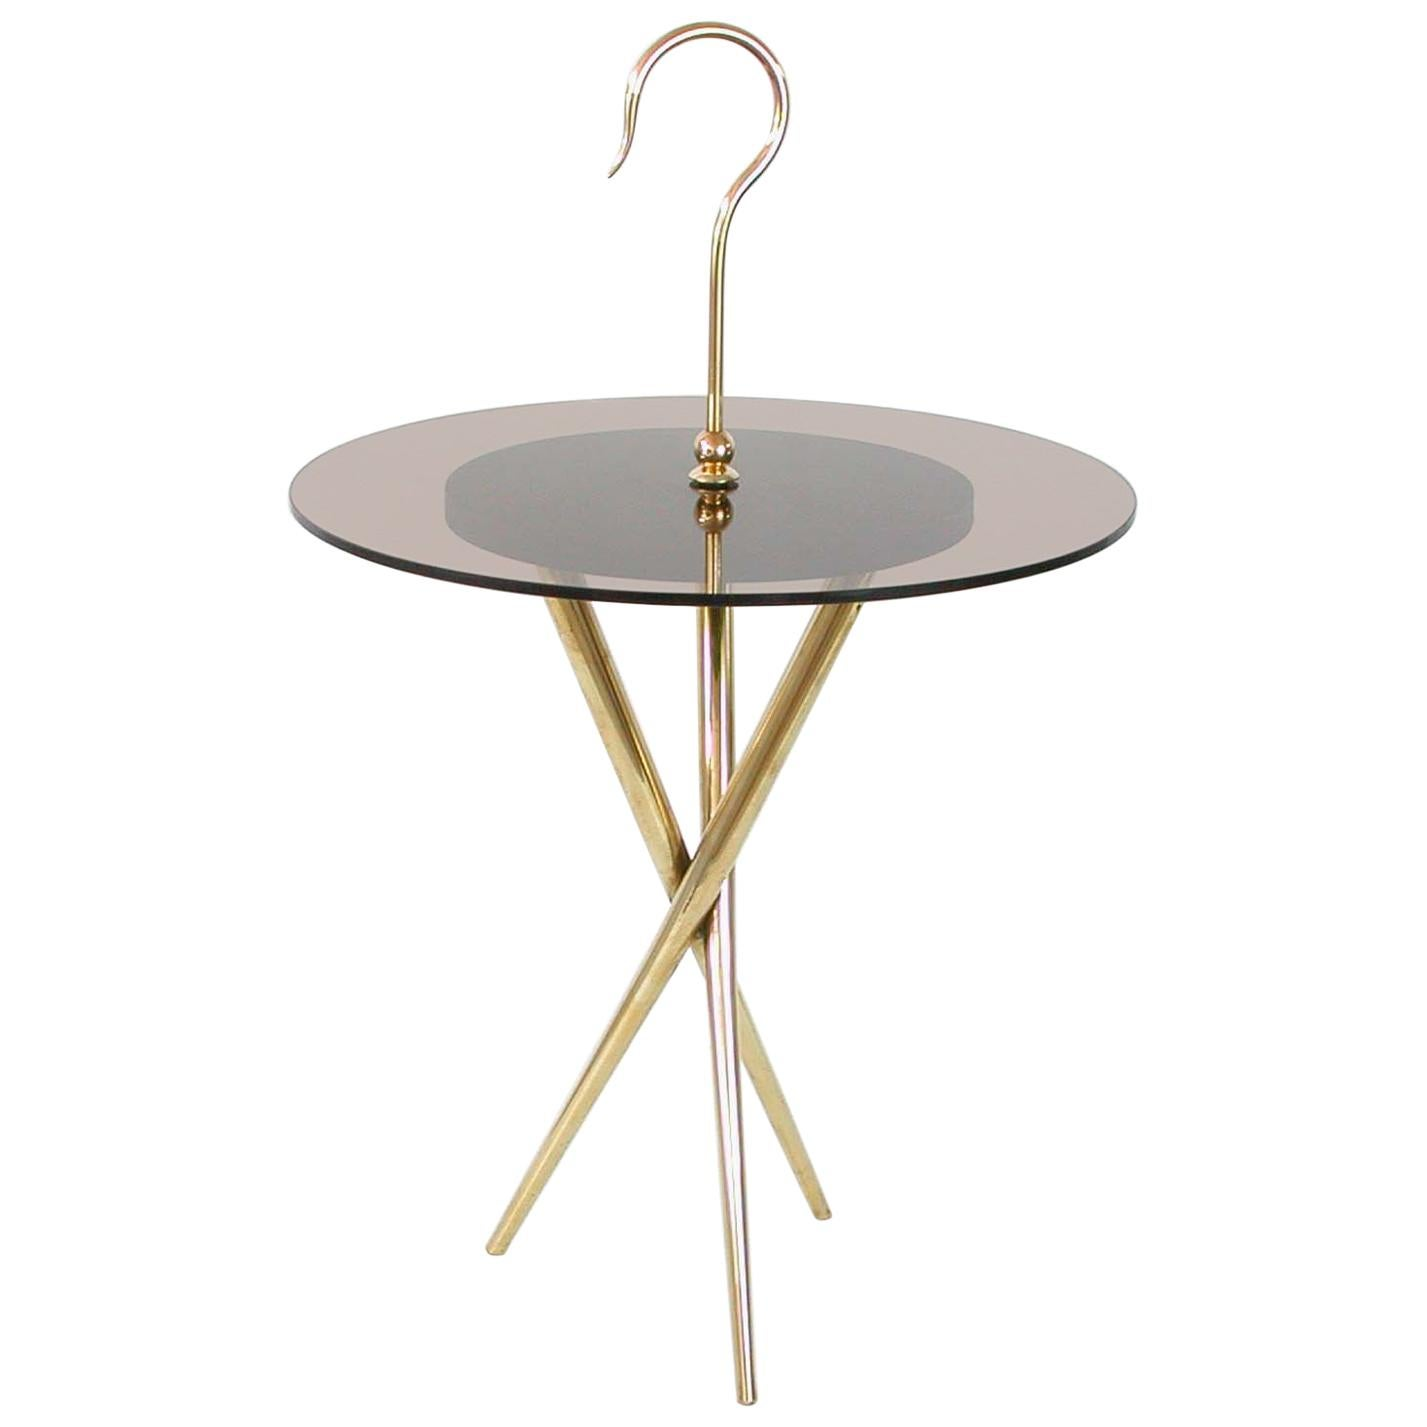 Italian Midcentury Brass and Tinted Glass Occasional Table, 1950s